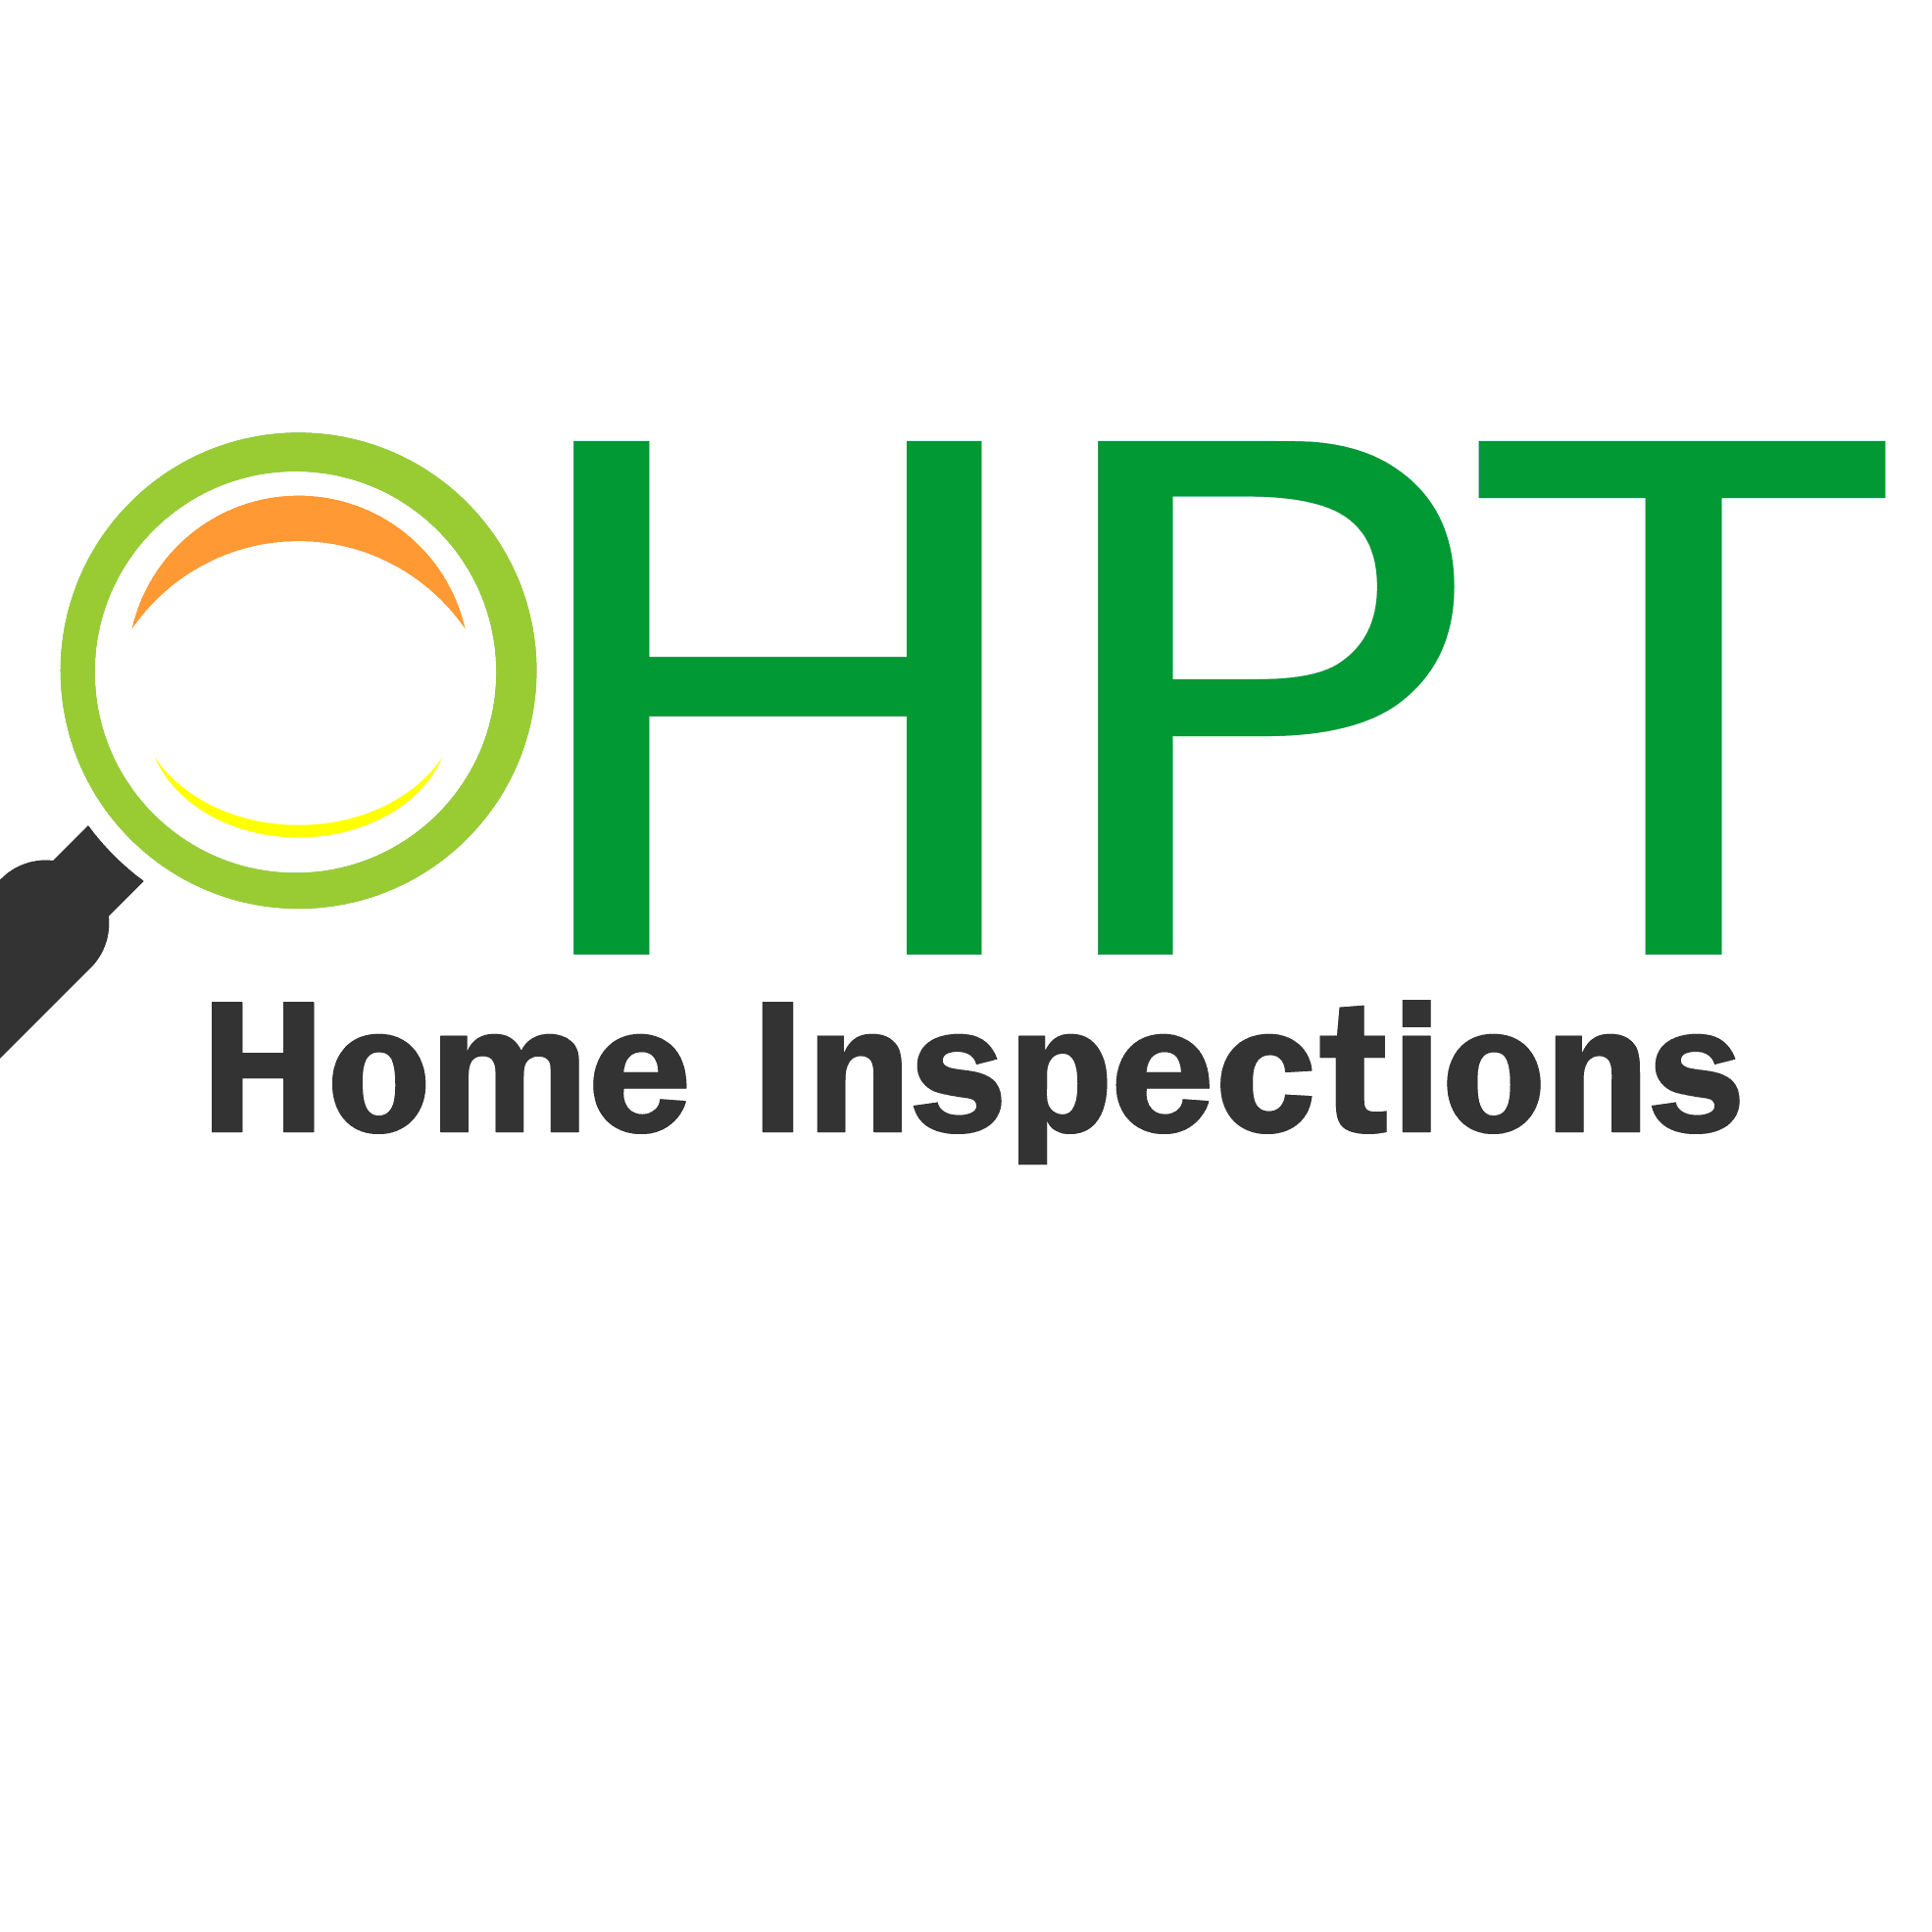 HPT Home Inspections